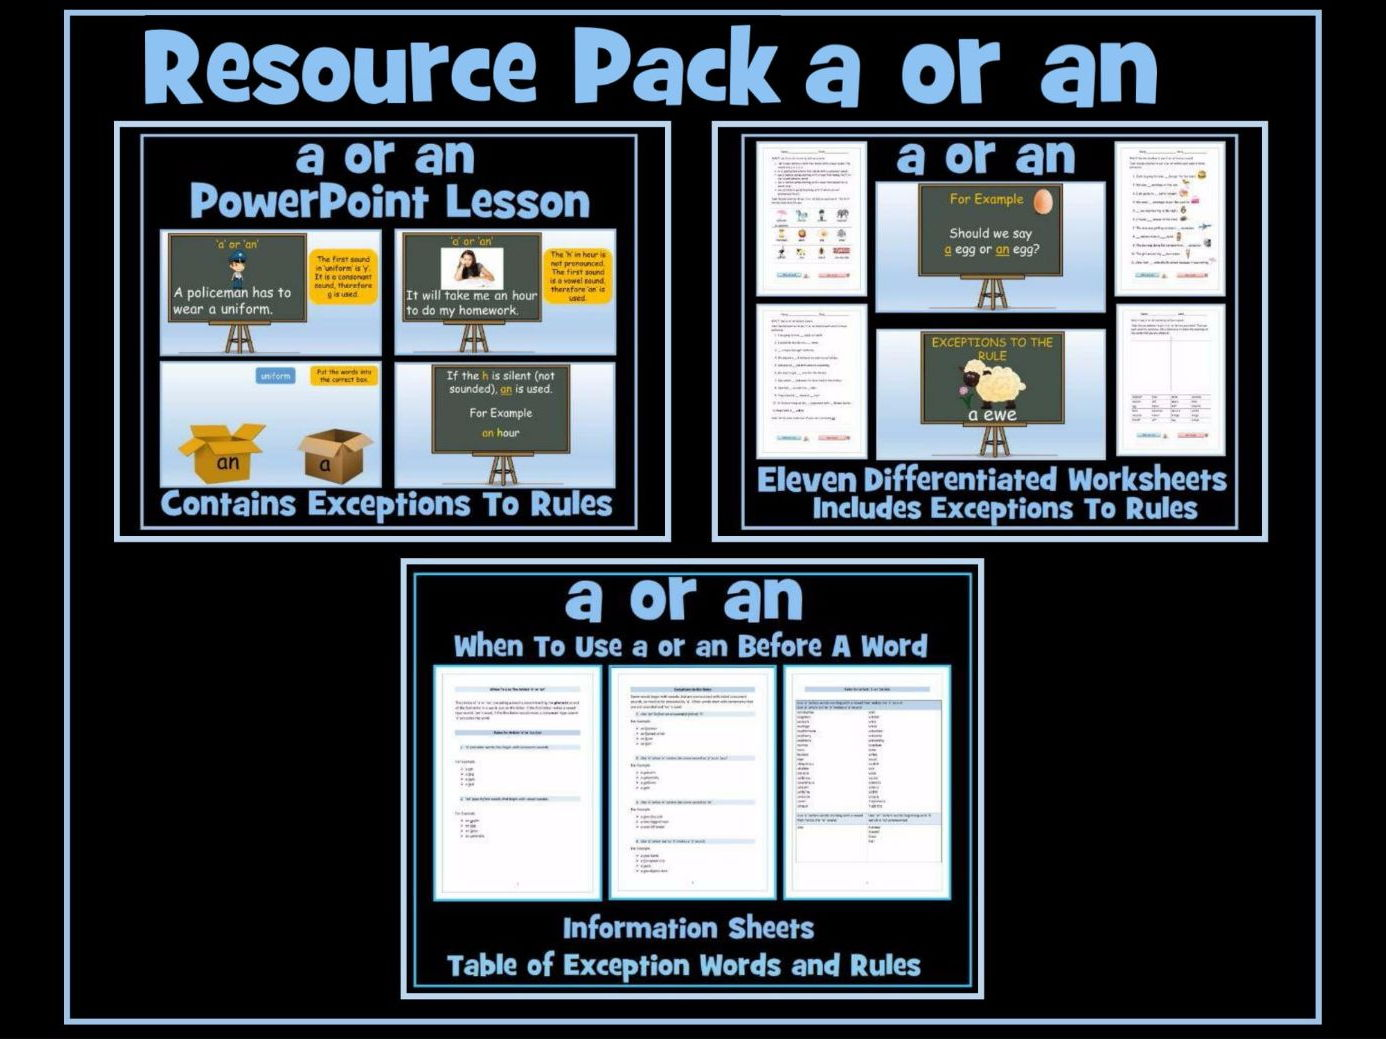 'a' or 'an' Resources - PowerPoint Lesson, 11 Worksheets, Information Sheets and Table of Exception Words